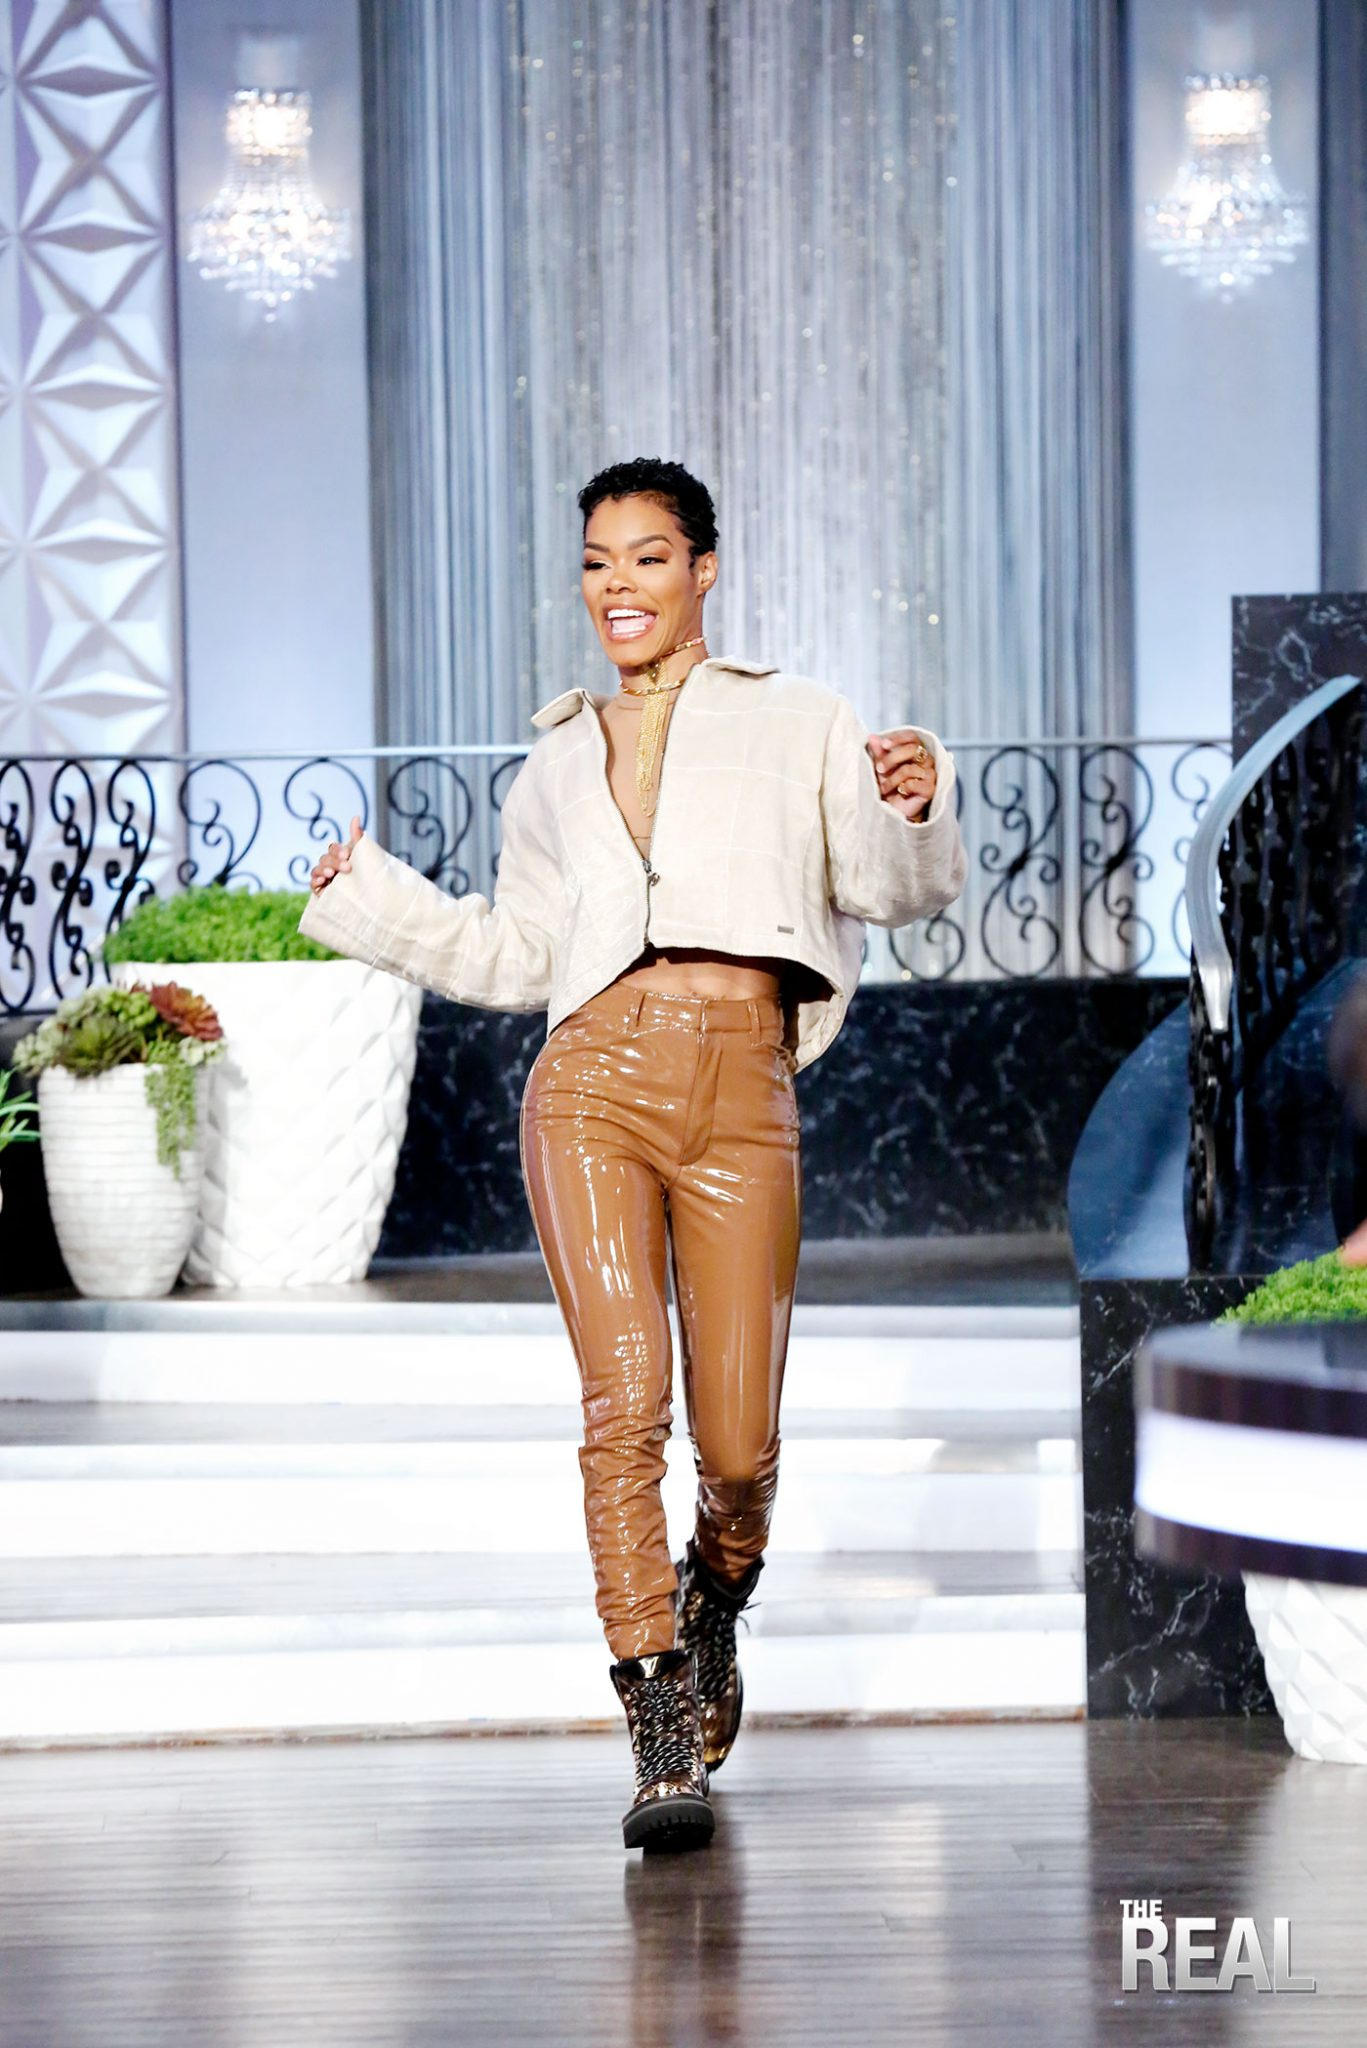 The Real Returned LIVE for Season 5 With Co-Host Teyana Taylor